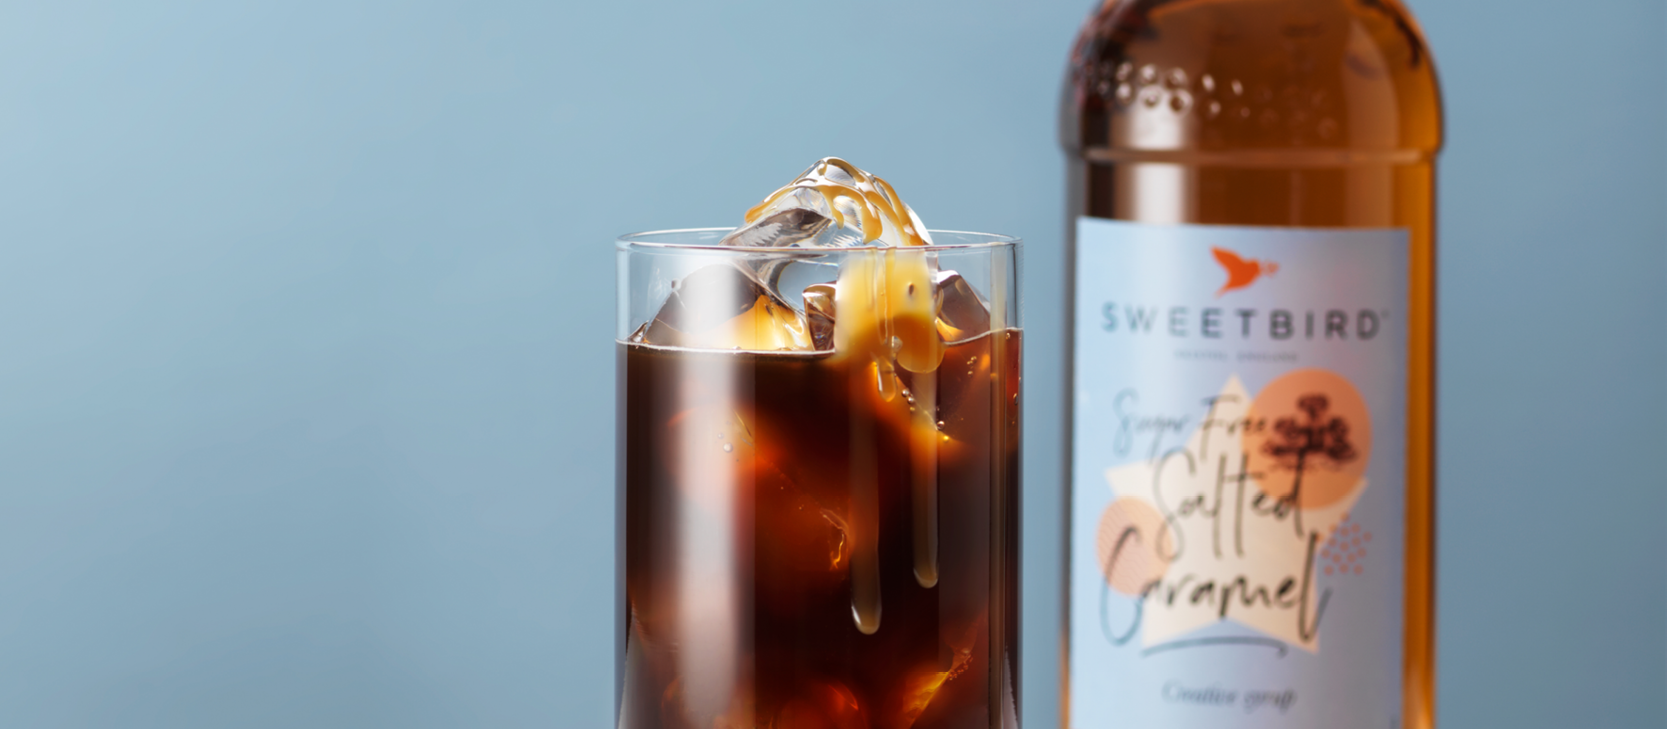 CH&Co Switches syrups to Sugar-free